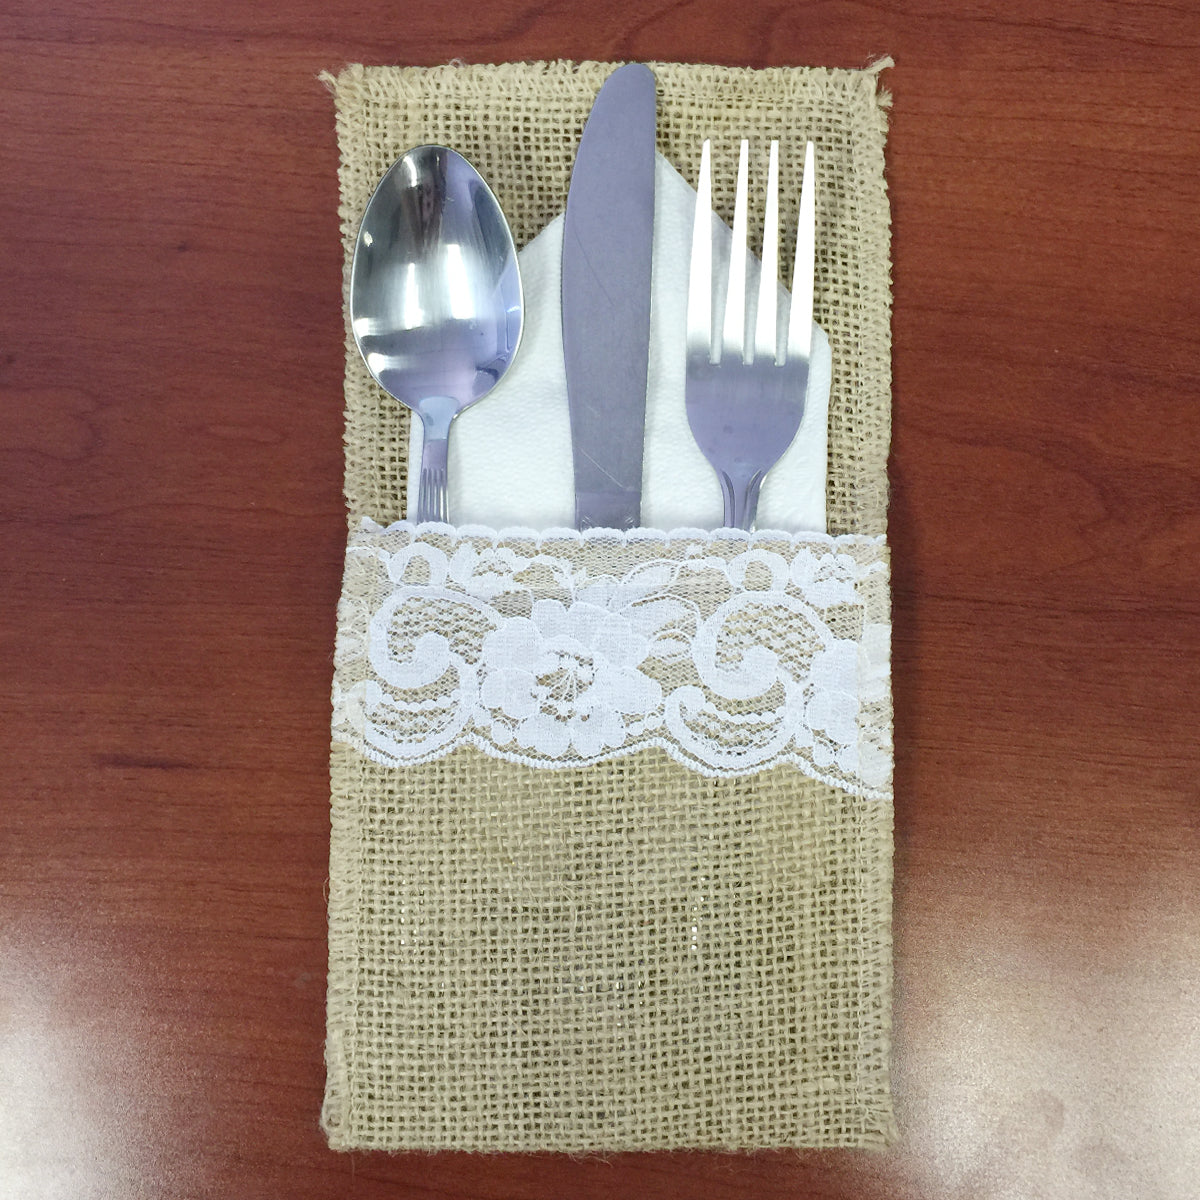 Wrapables Burlap with Lace Cutlery Holder for Rustic Weddings (Set of 10)